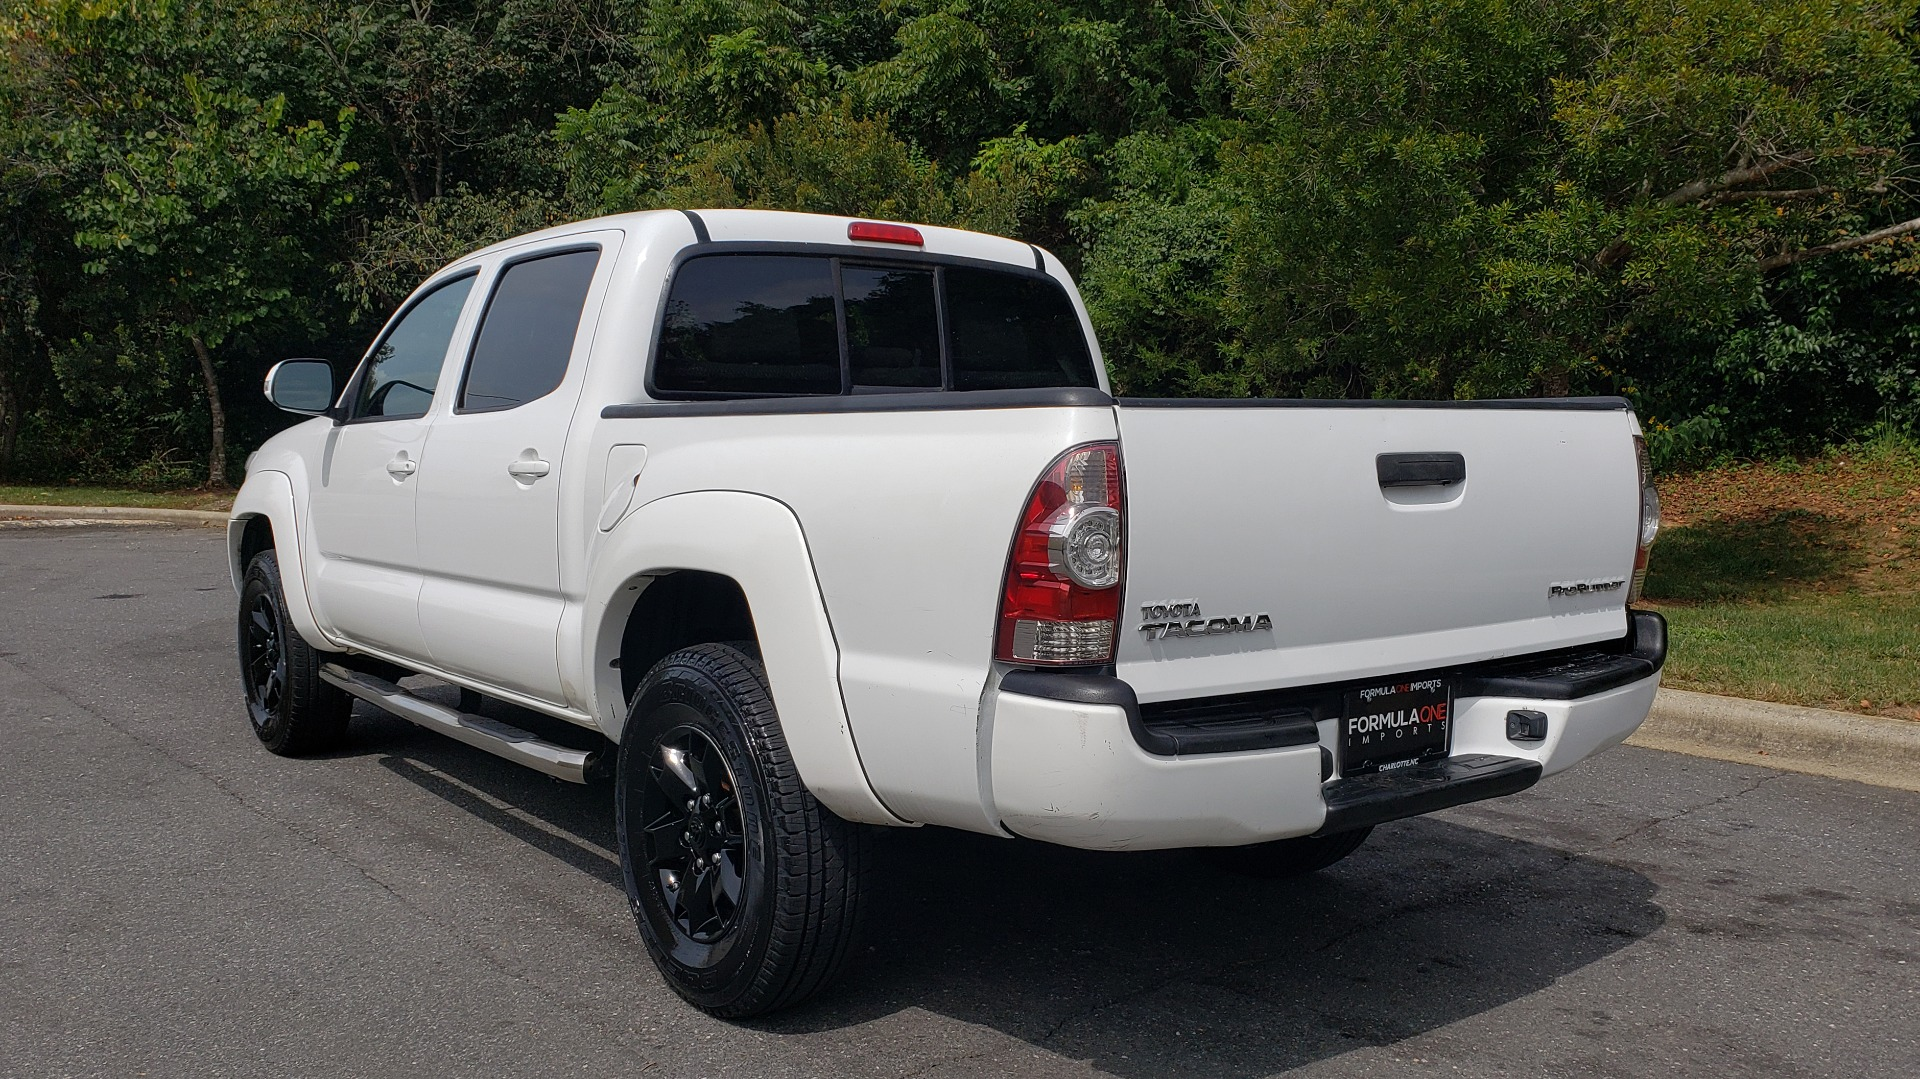 Used 2015 Toyota TACOMA PRERUNNER DOUBLE CAB/ 4-CYL / 4-SPD AUTO / SR PKG / CONV PKG for sale $15,995 at Formula Imports in Charlotte NC 28227 3